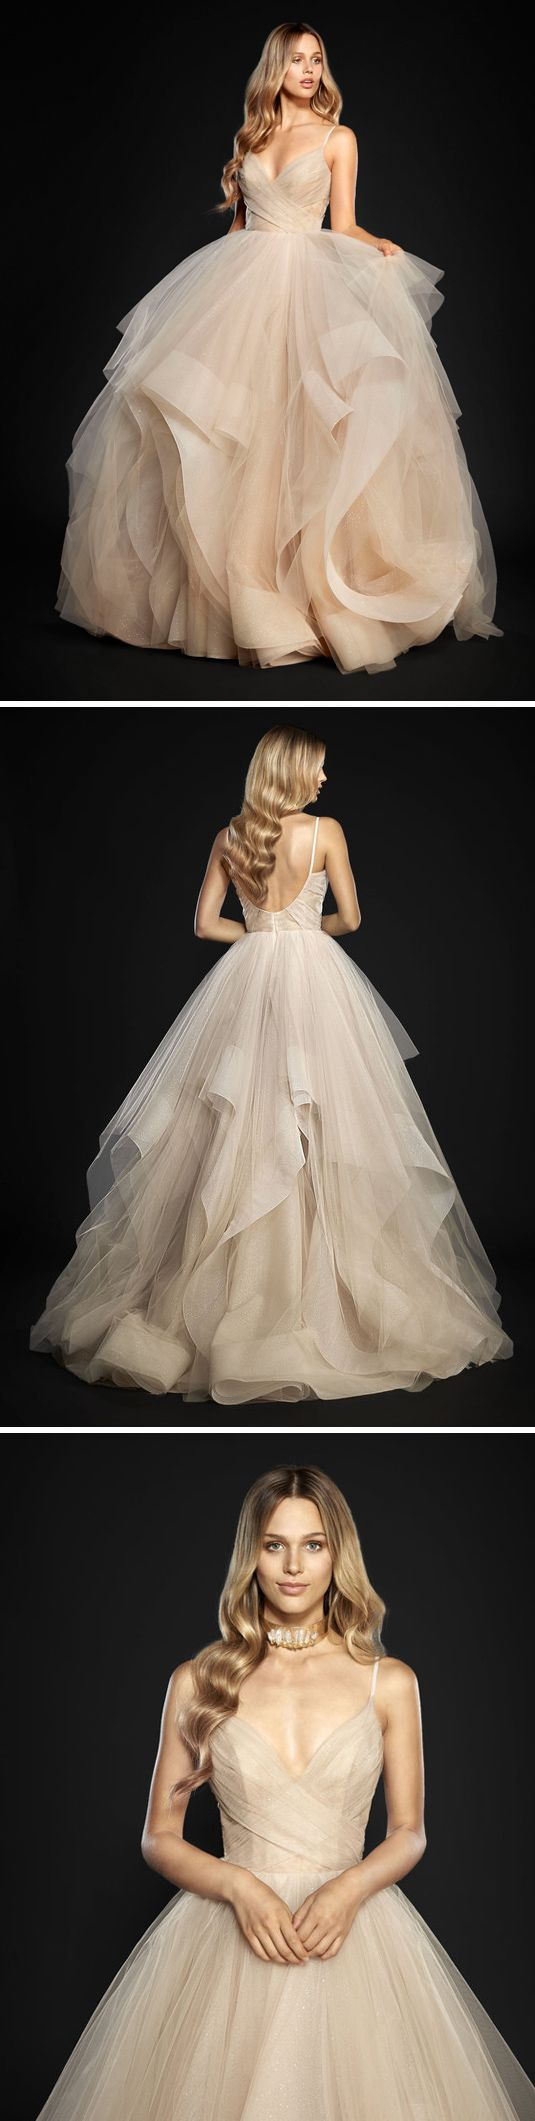 champagne color champaign wedding dress 25 Best Ideas about Champagne Color on Pinterest Champagne wedding colors Spray paint babys breath and Pink champagne wedding